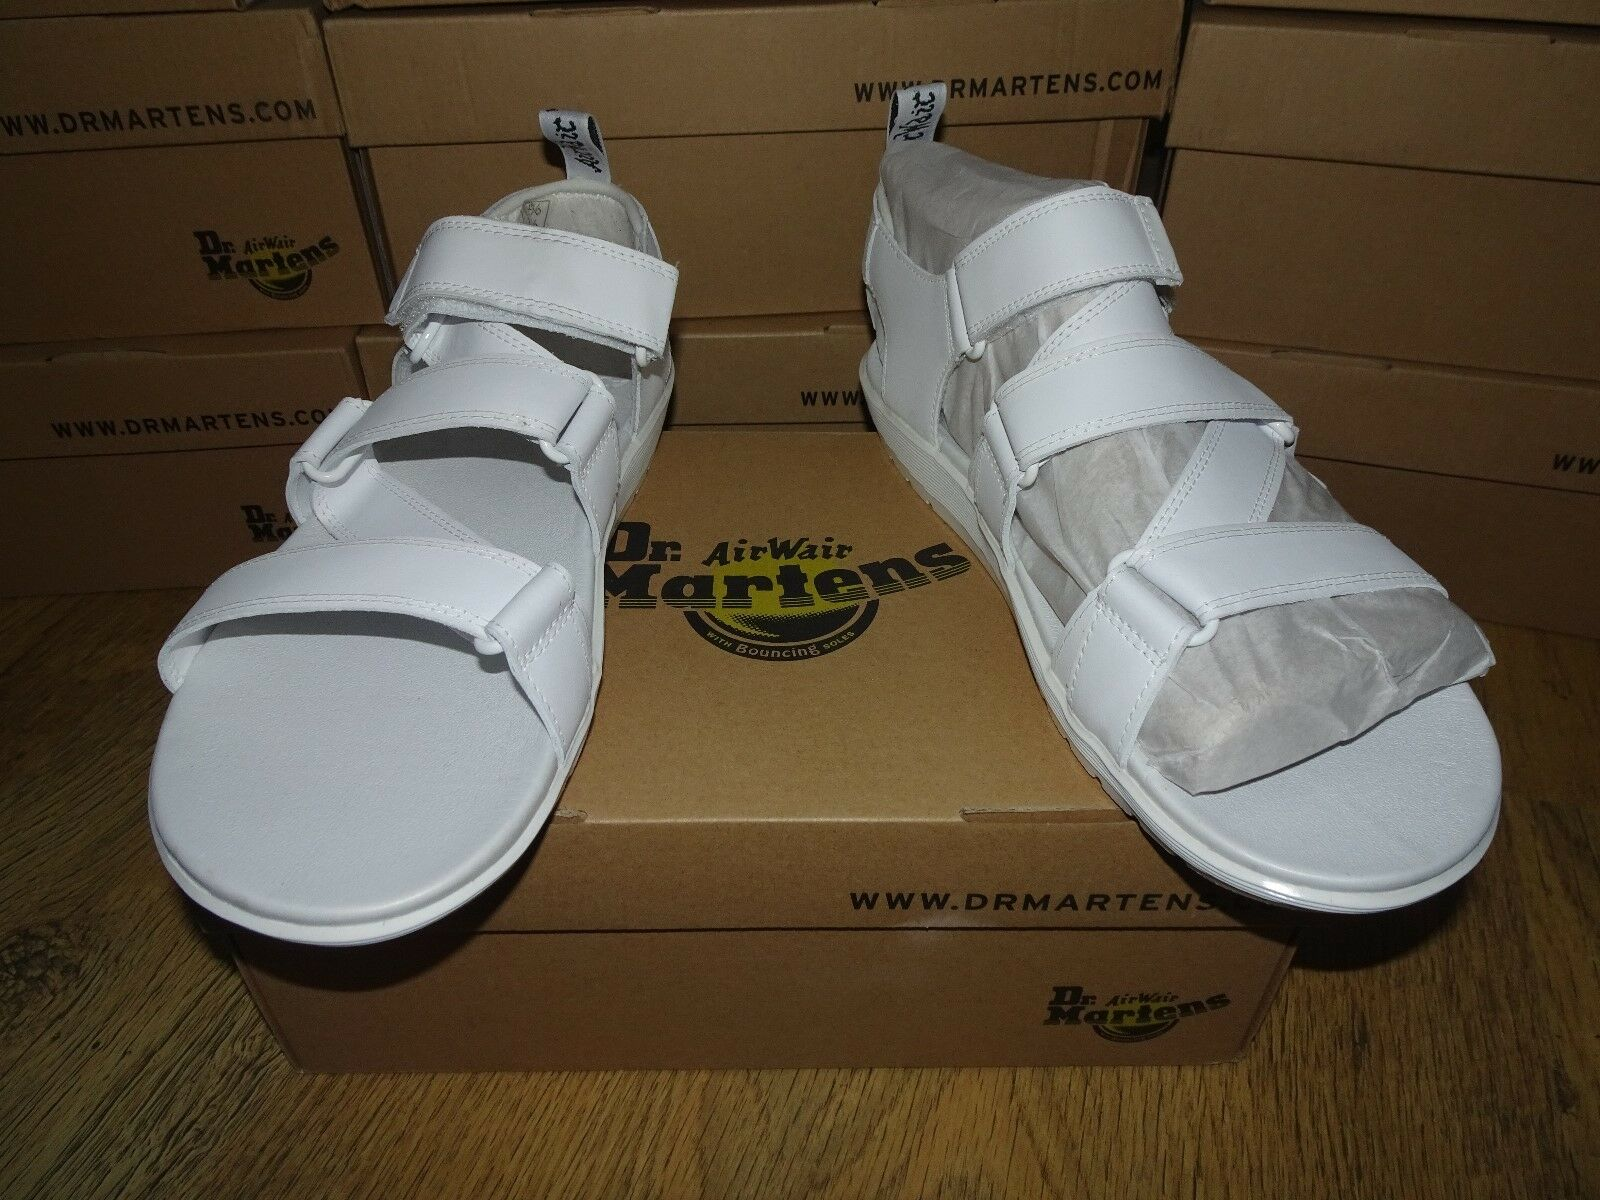 Dr Martens White REDFIN Hydro Leather Z Strap Sandals Size 8 UK BNIB